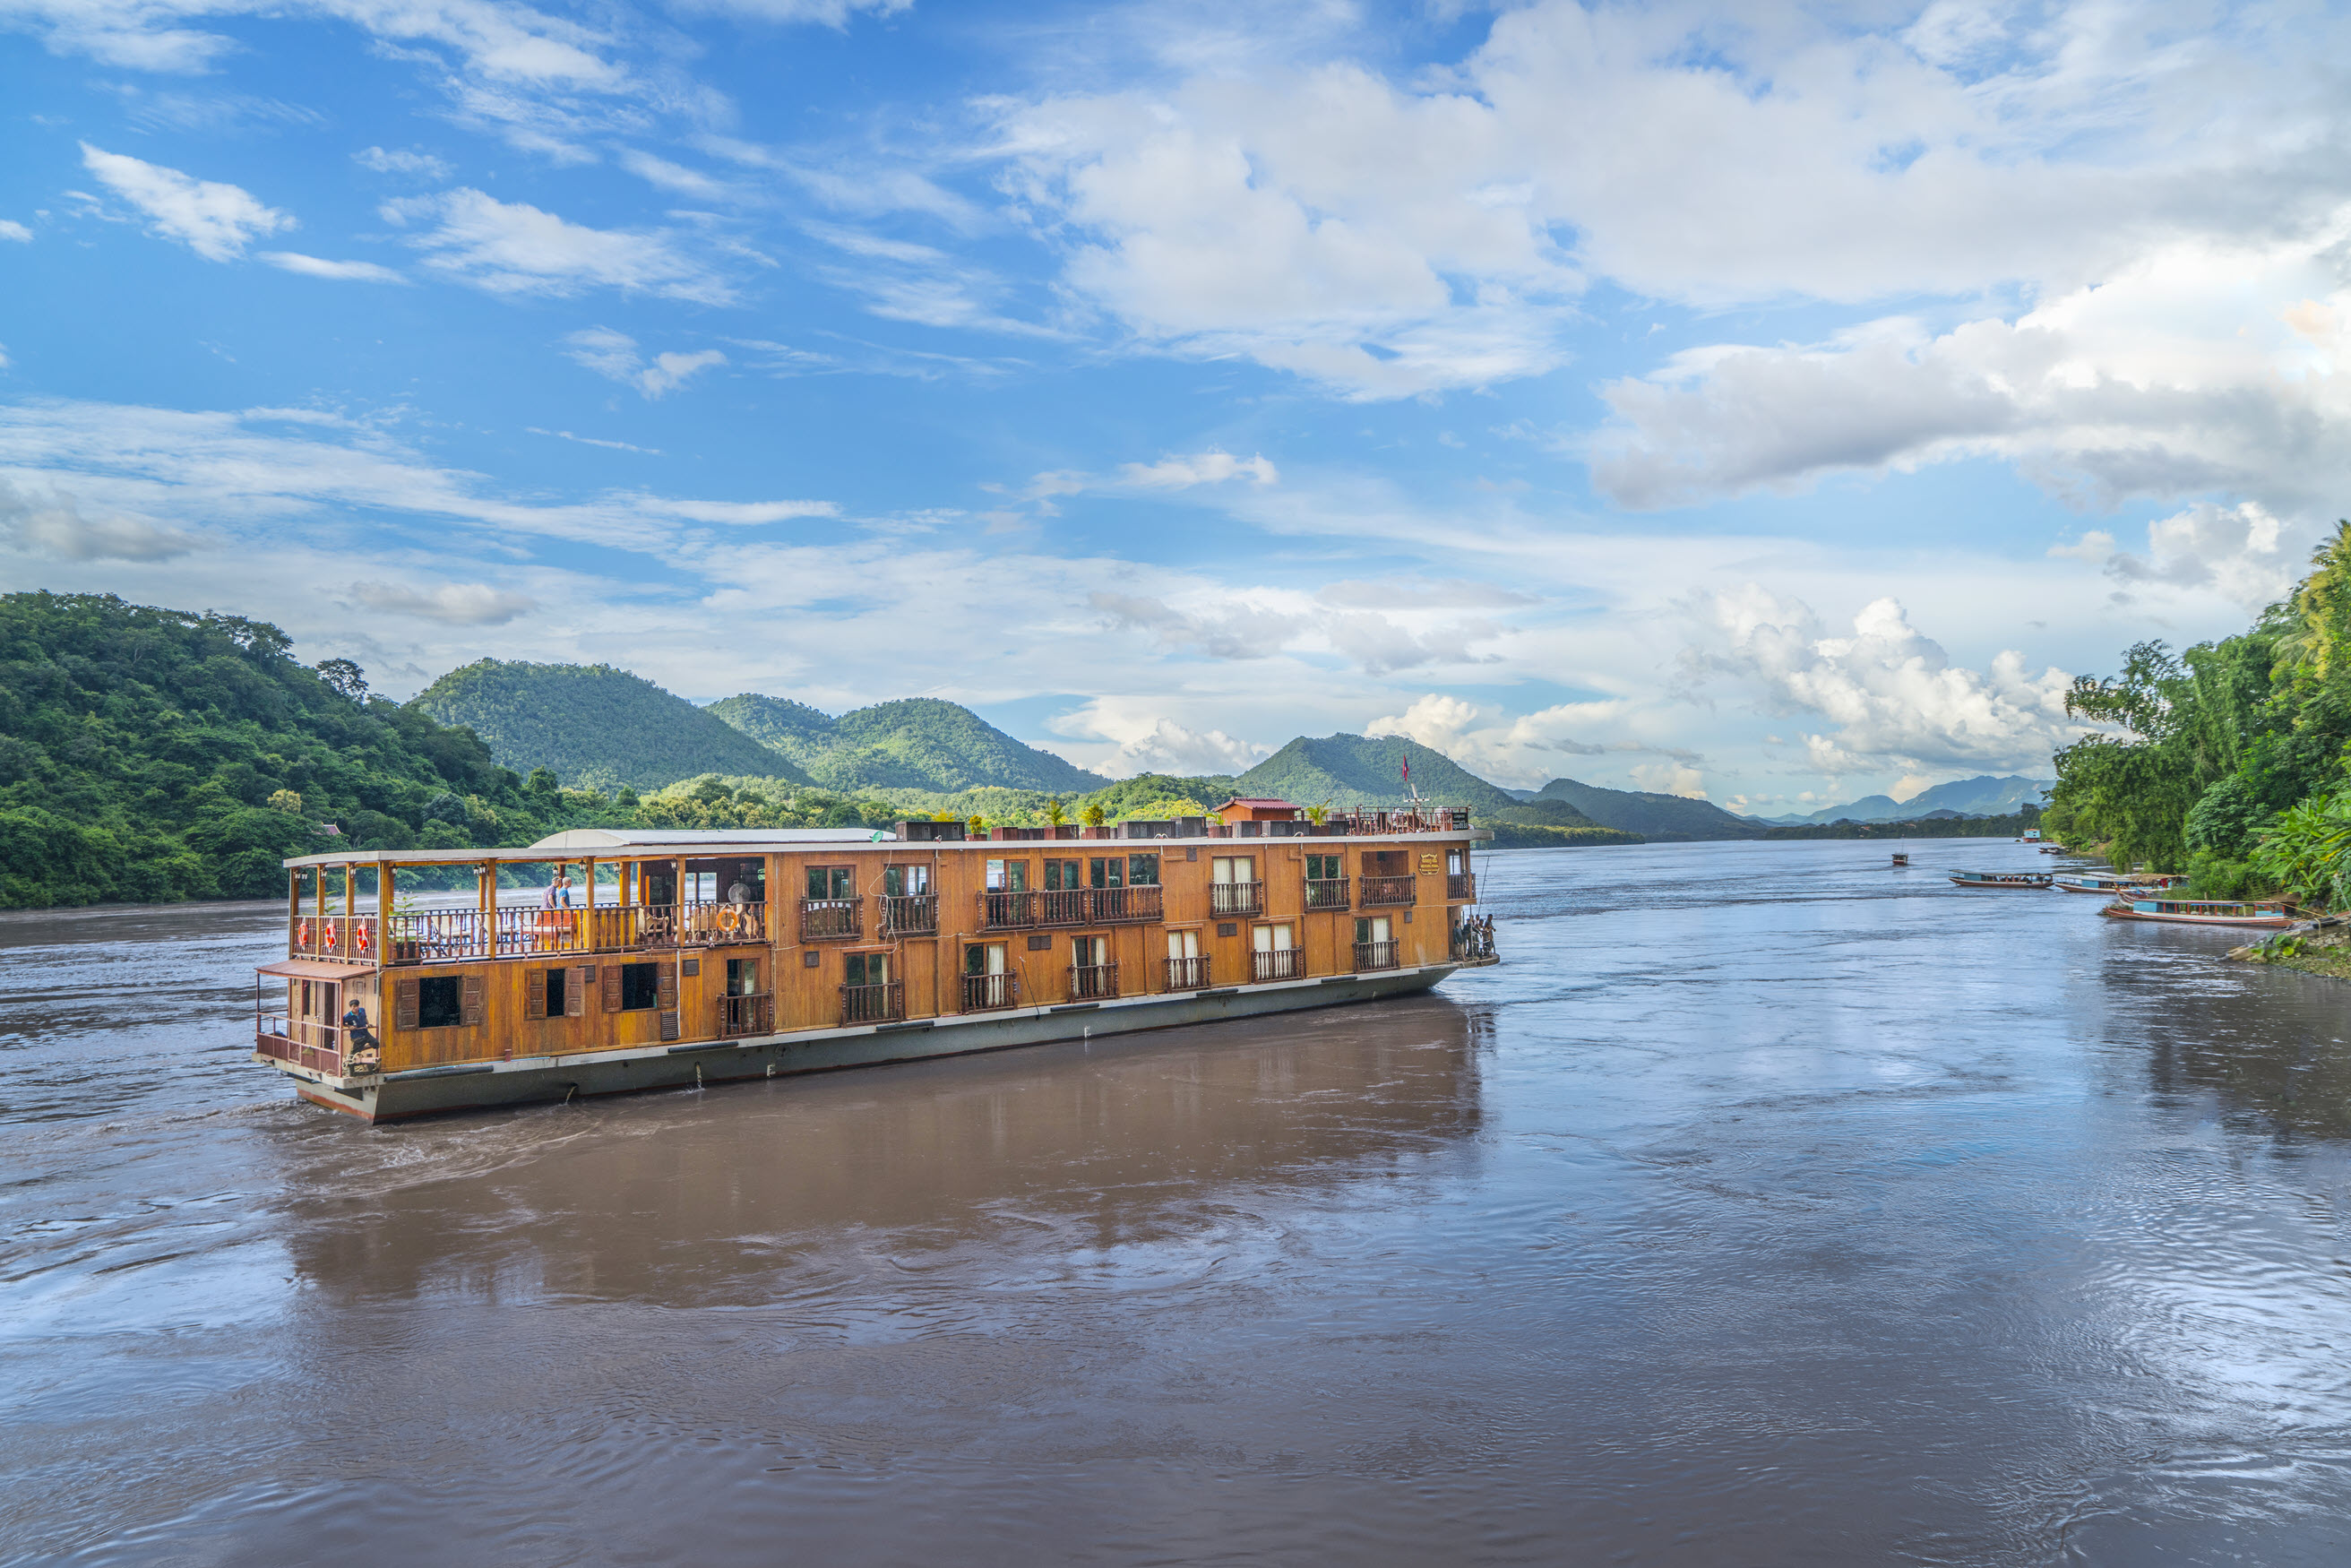 10-Day Impressions Mekong River Cruise in Laos and Cambodia Tour